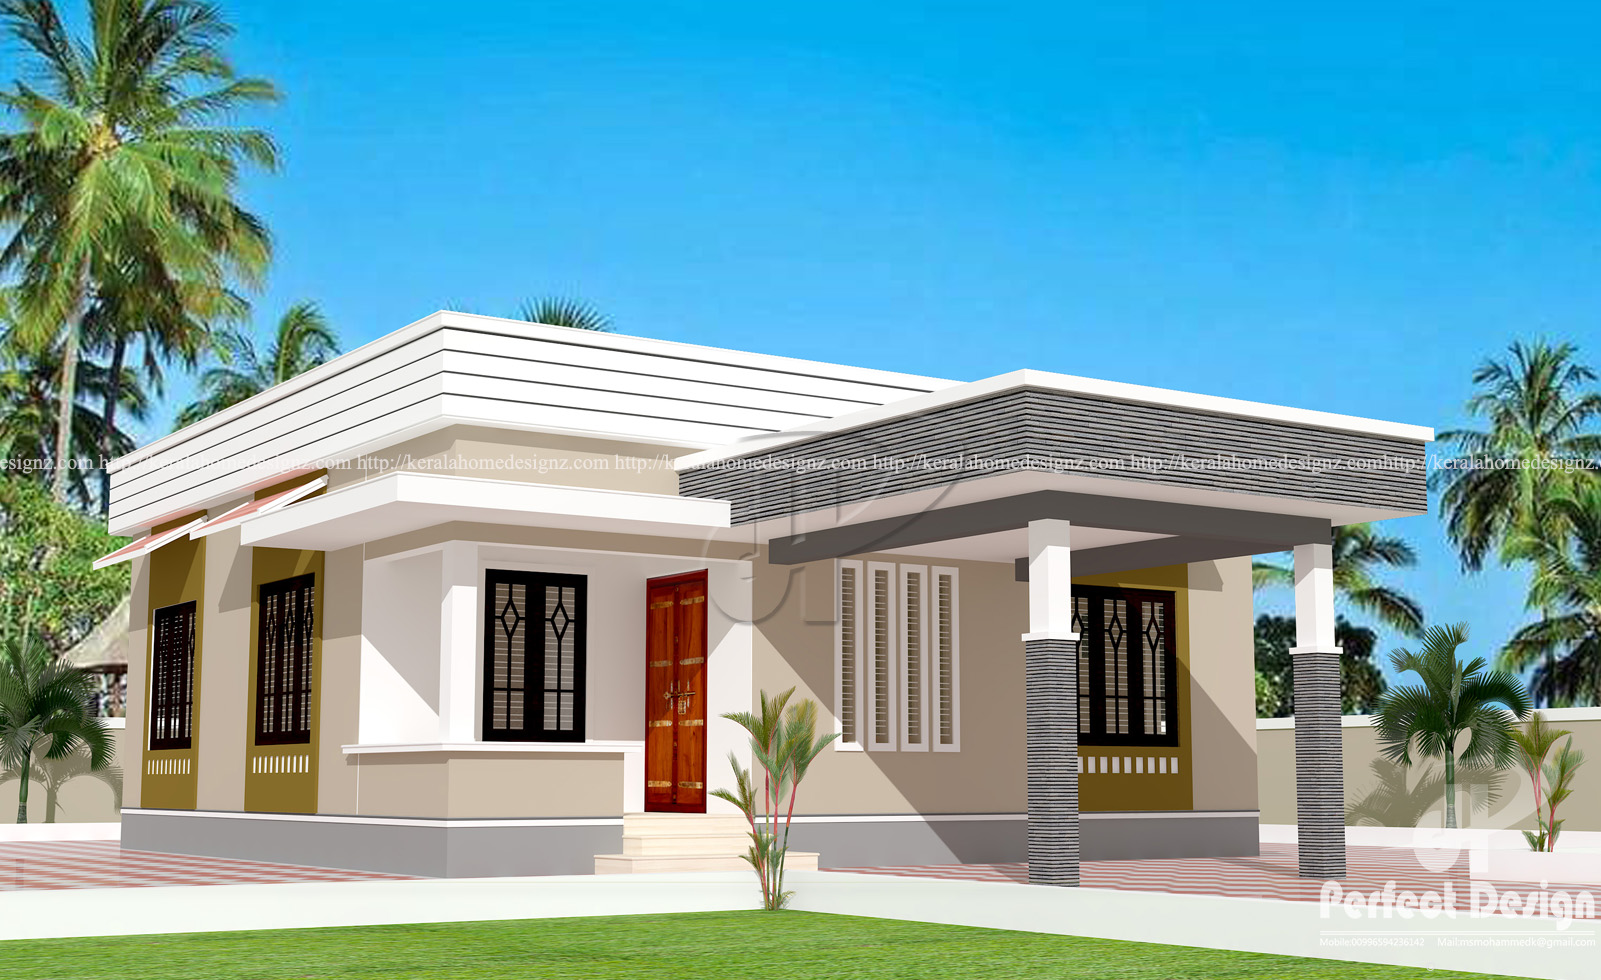 829 sq ft low cost home designs kerala home design for Kerala home designs low cost